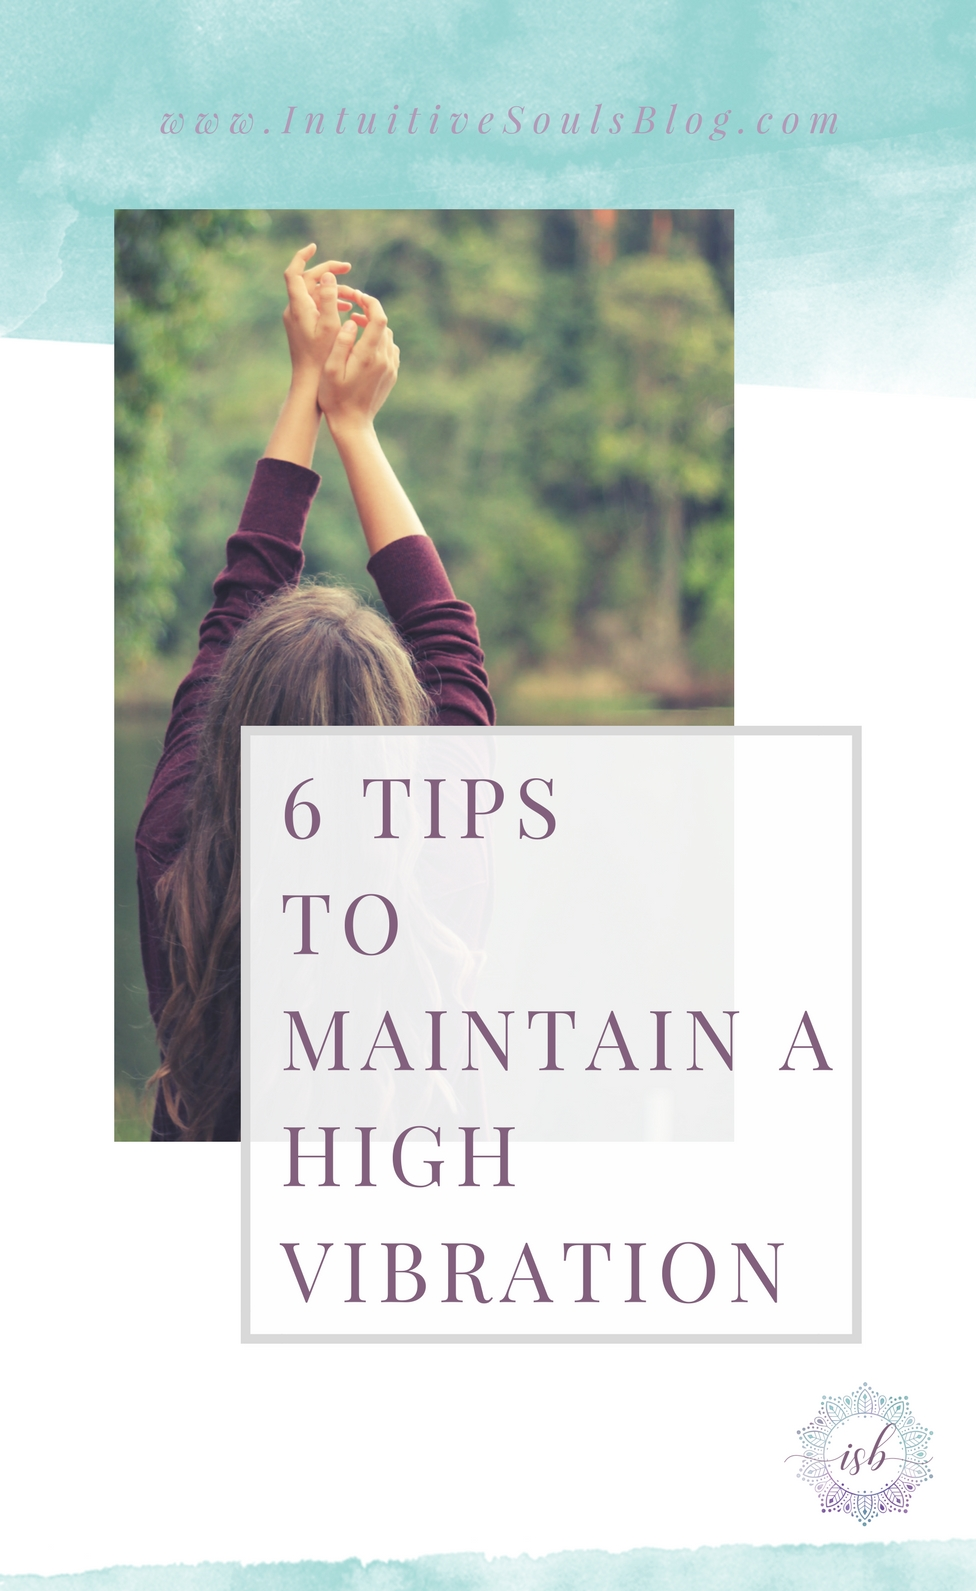 It's easy to keep a high vibration when everything is going your way... but when things are